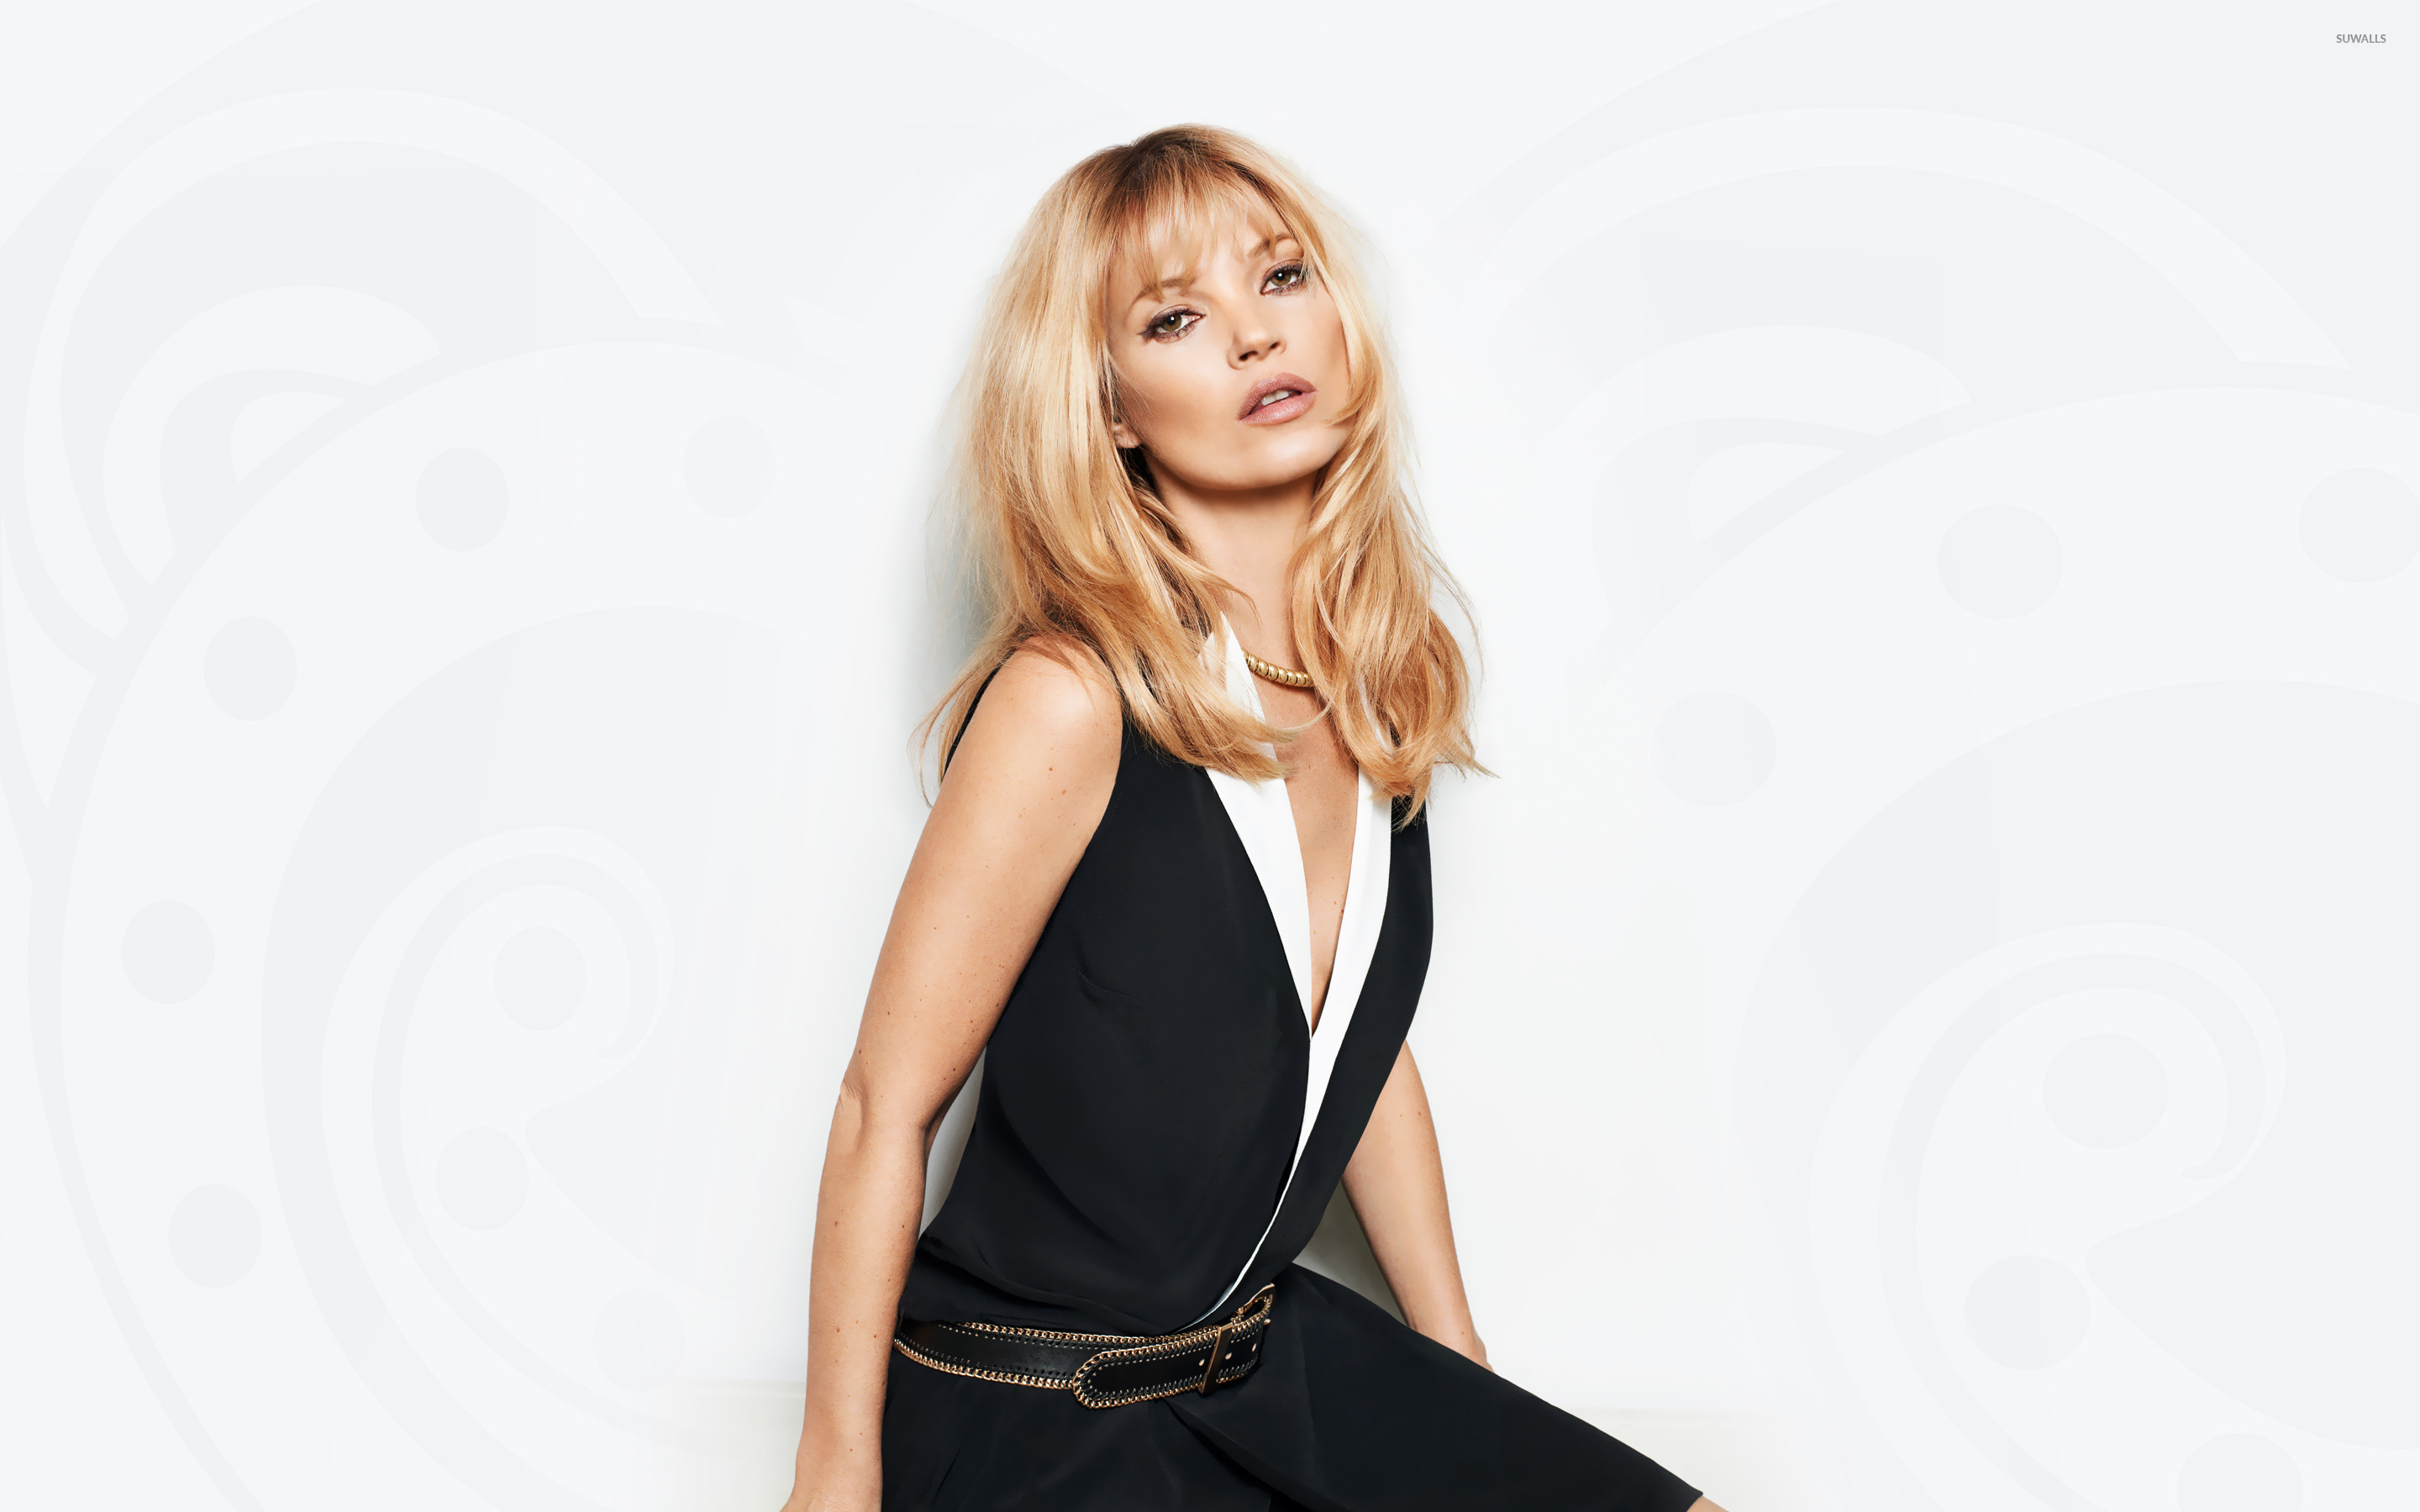 Kate Moss Wallpapers